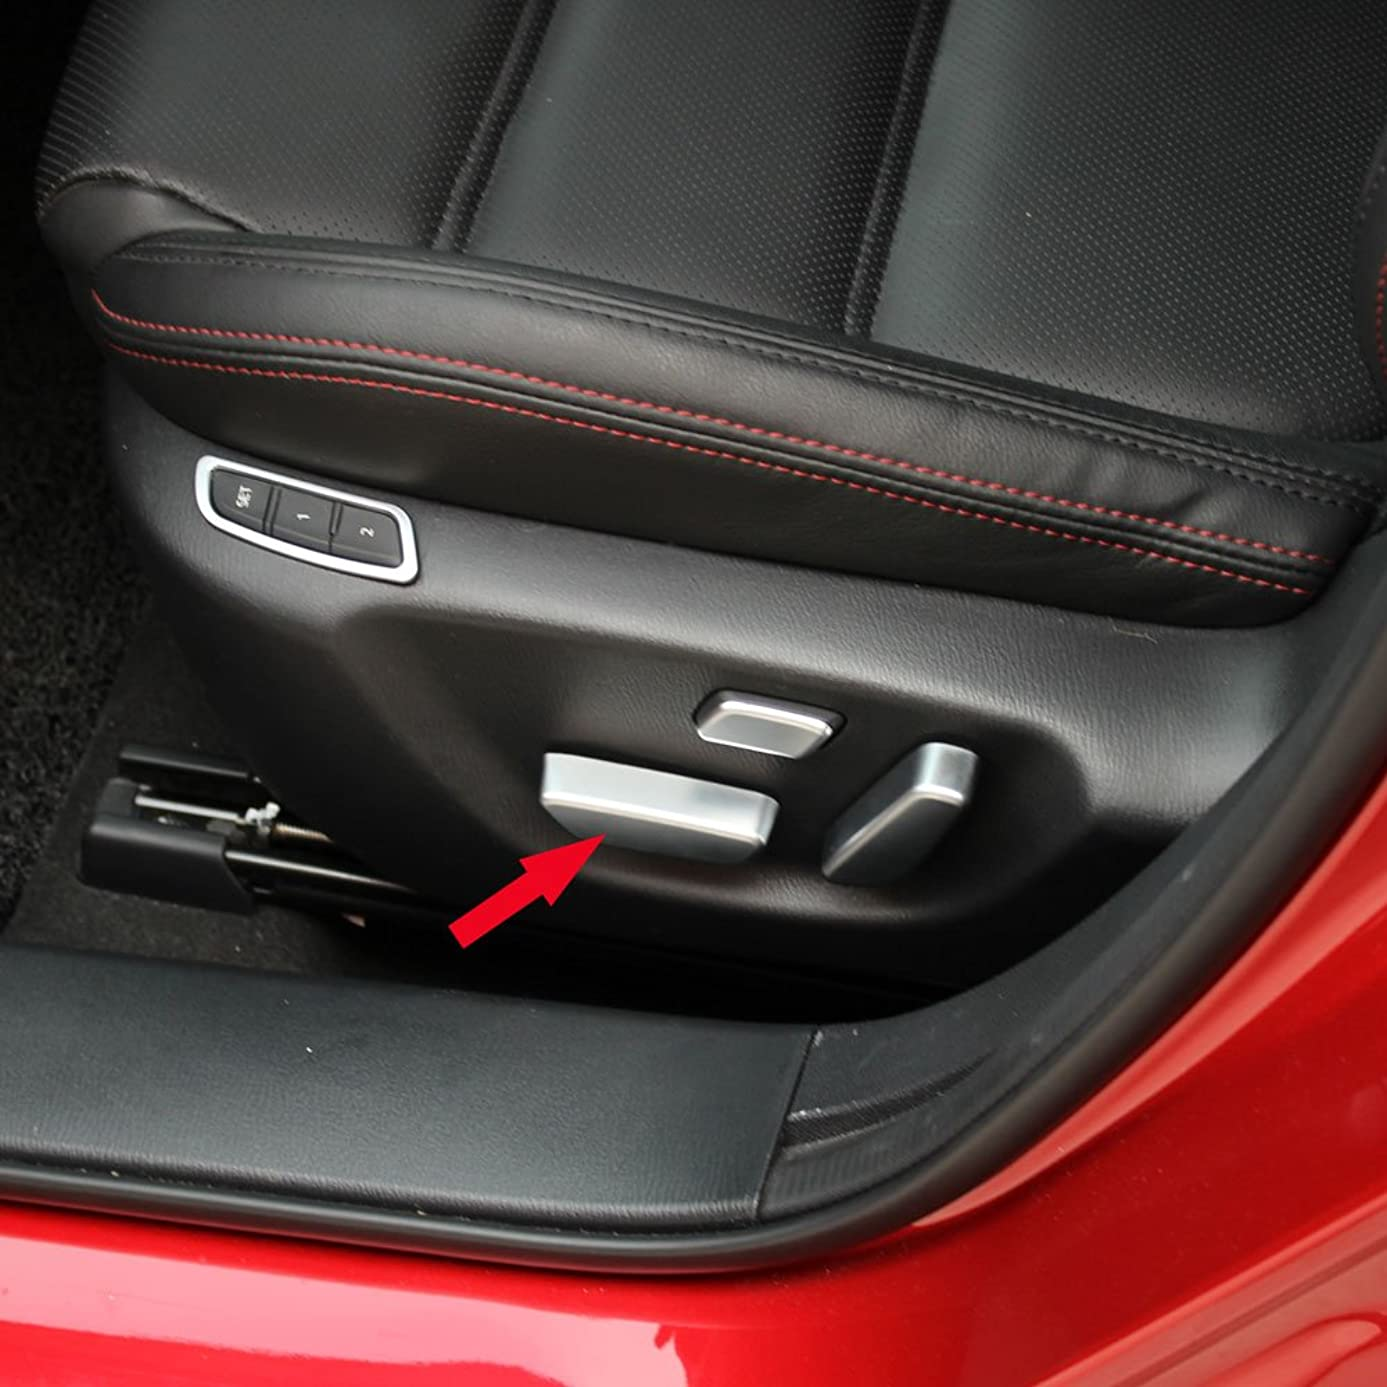 Generic Matte Door Seat Button Adjust Switch Cover Trim Fit For Mazda 6 Atenza 2014 2015 2016 2017